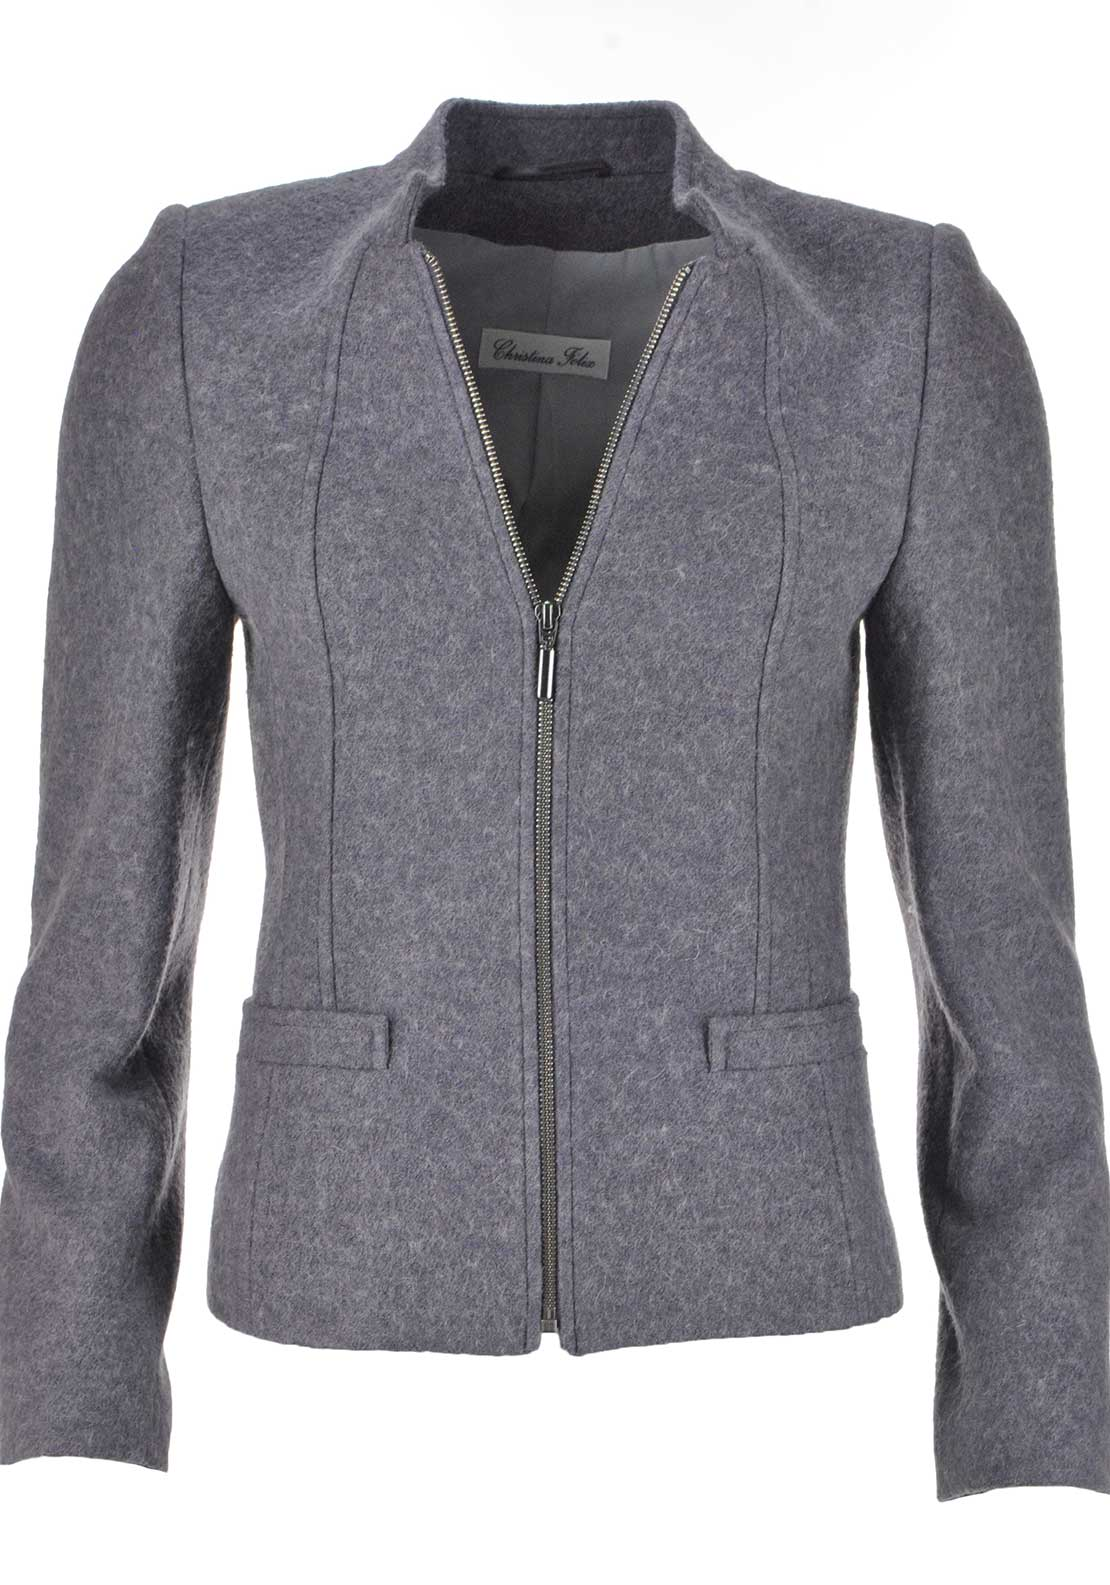 Christina Felix Wool Blend Zip Front Jacket, Grey